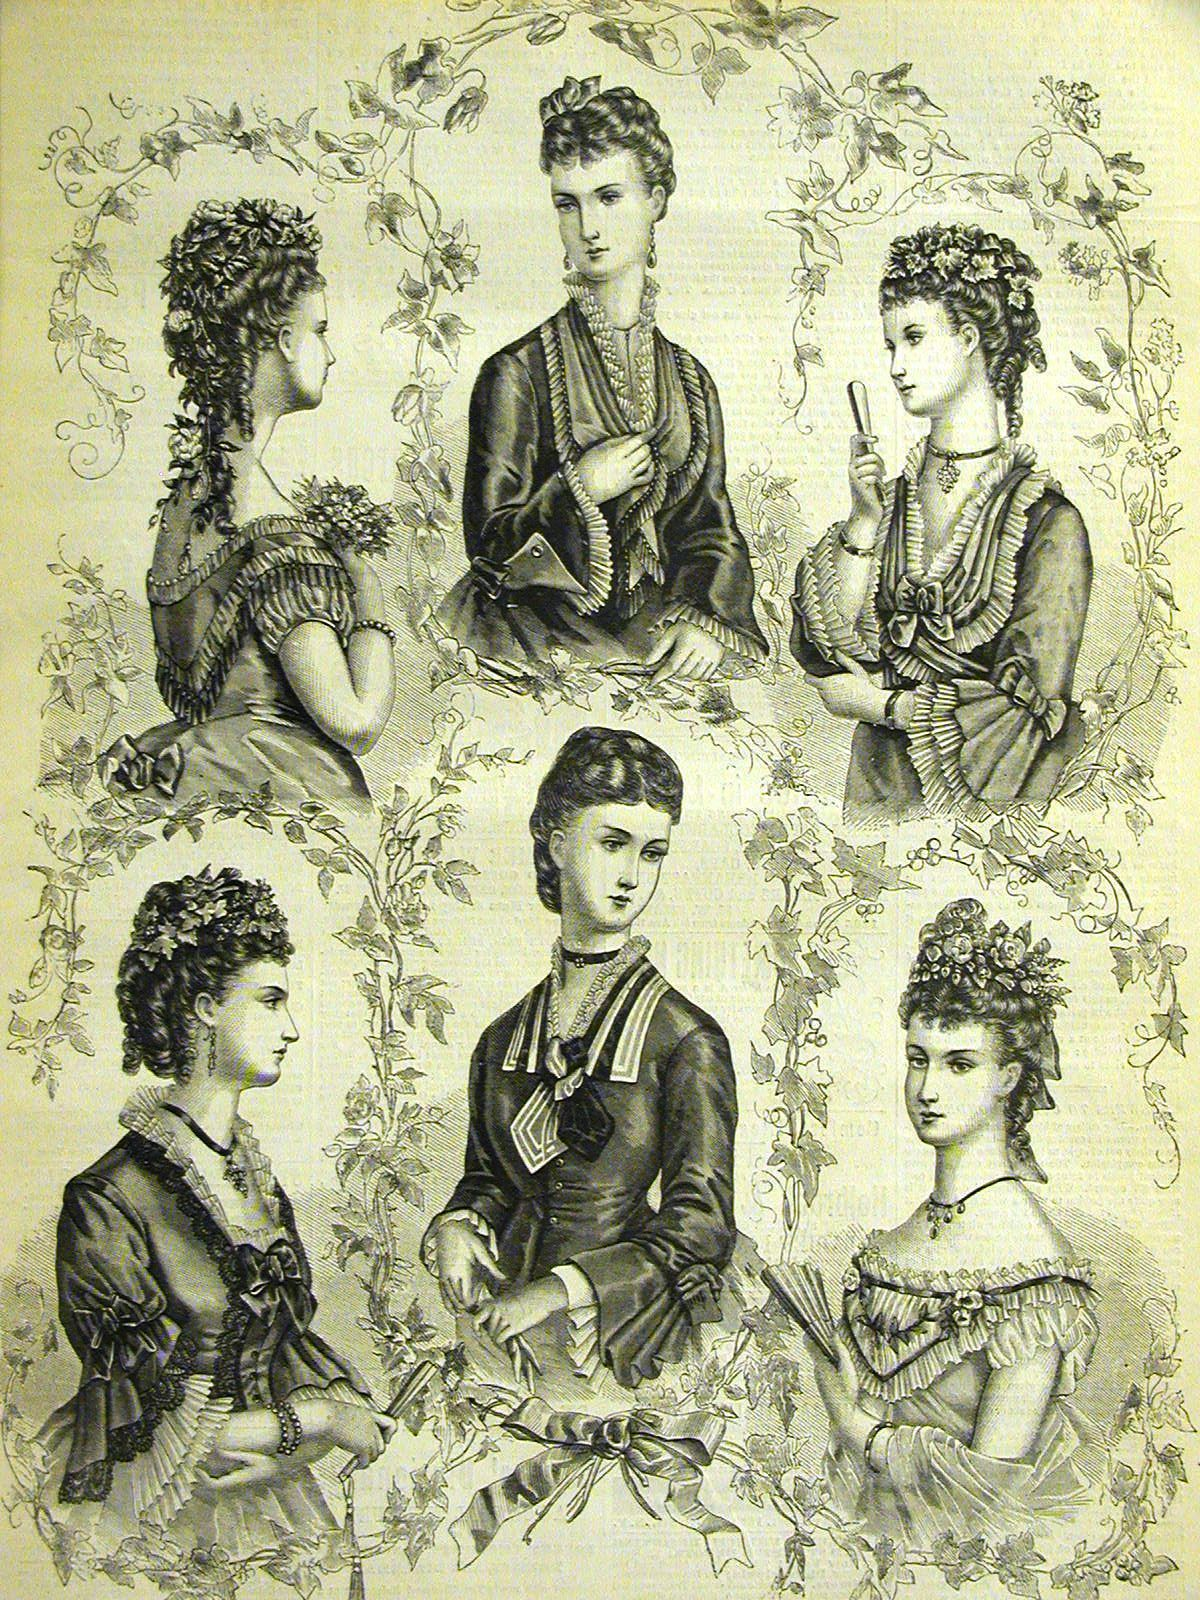 Fashion plate showing Victorian modes and hair styles of the s